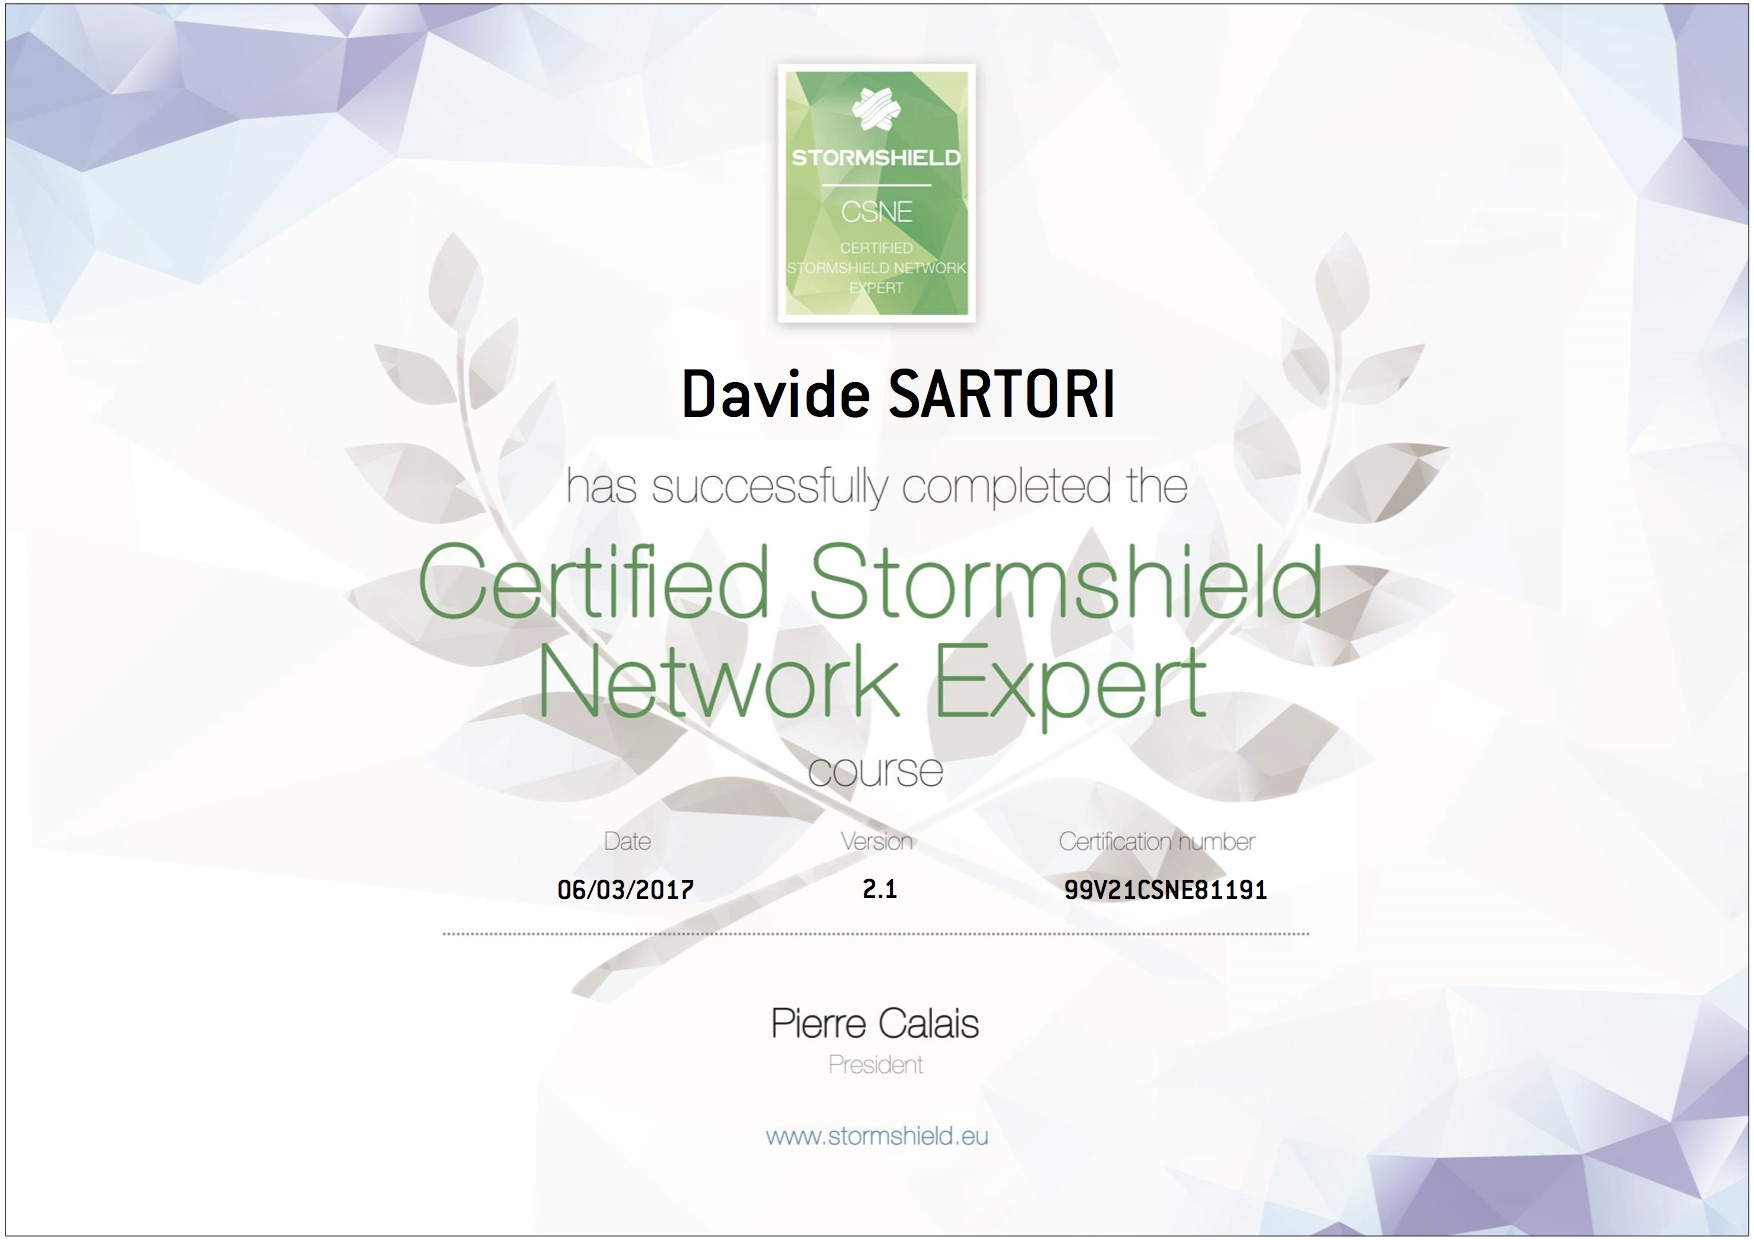 Stormshield Certified Network Expert